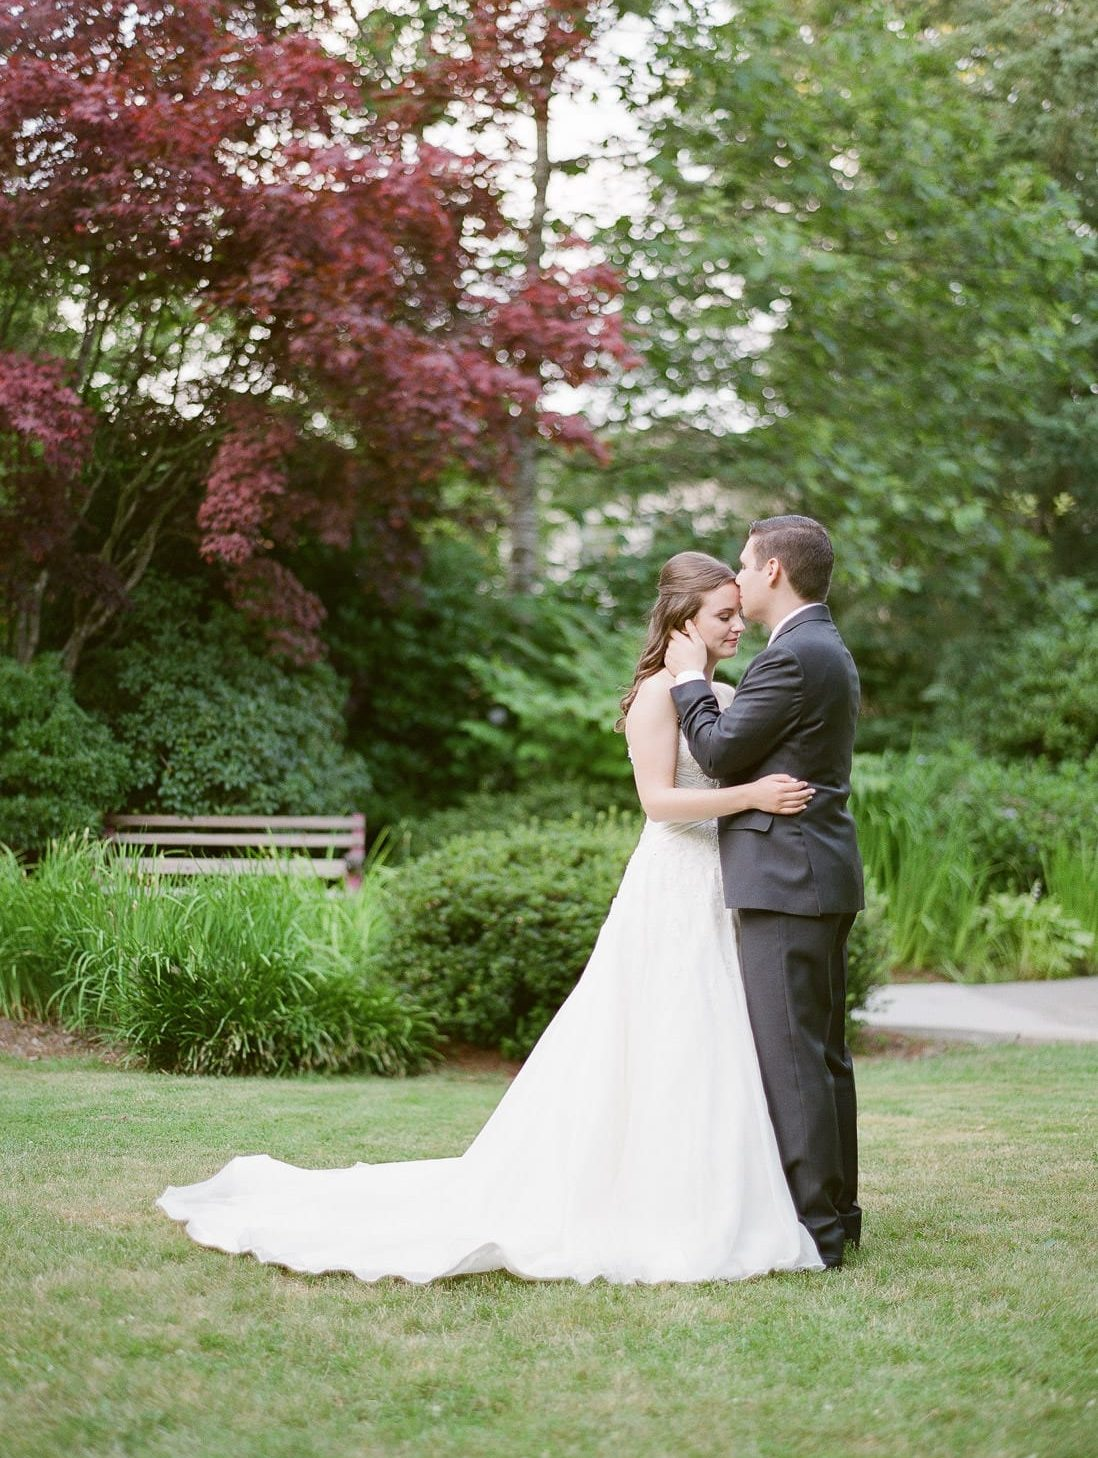 a couple posing in the park with gazebo in Maple Ridge, holding each other during wedding photo session